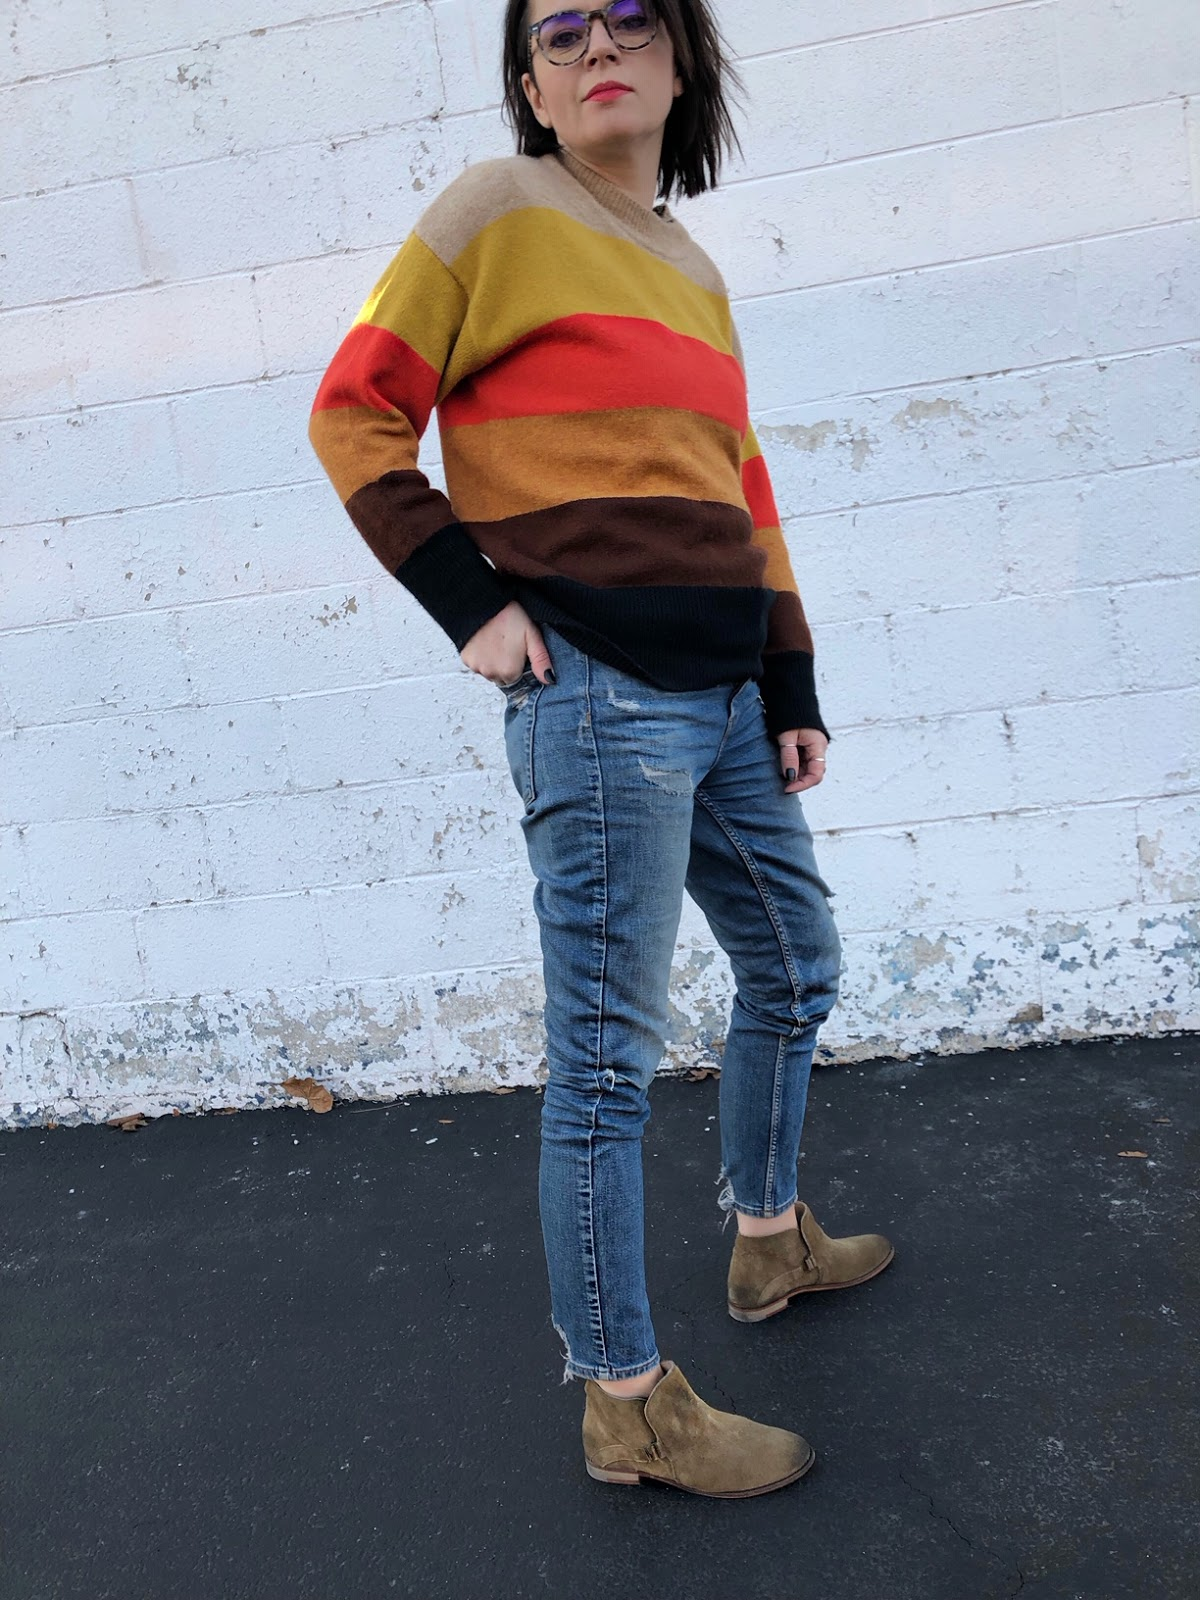 styling the same striped sweater in a new way